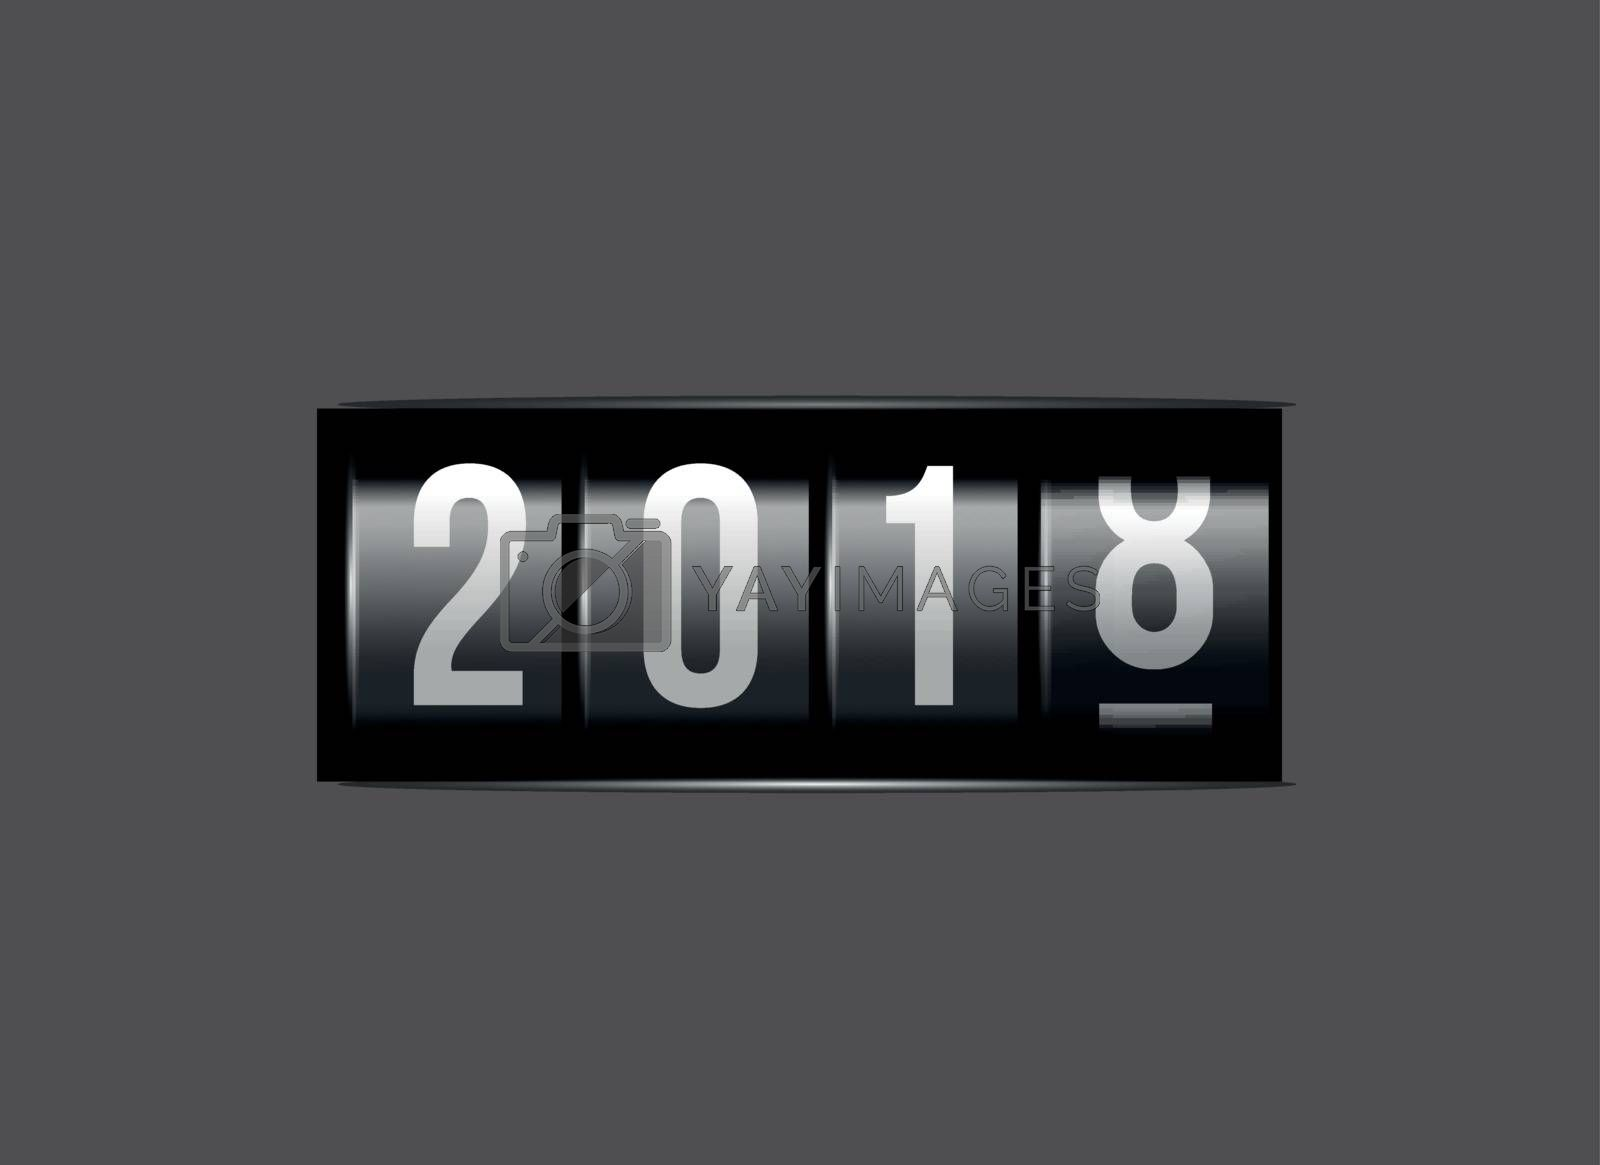 Congratulations on the New Year 2018 against the counter. Vector illustration